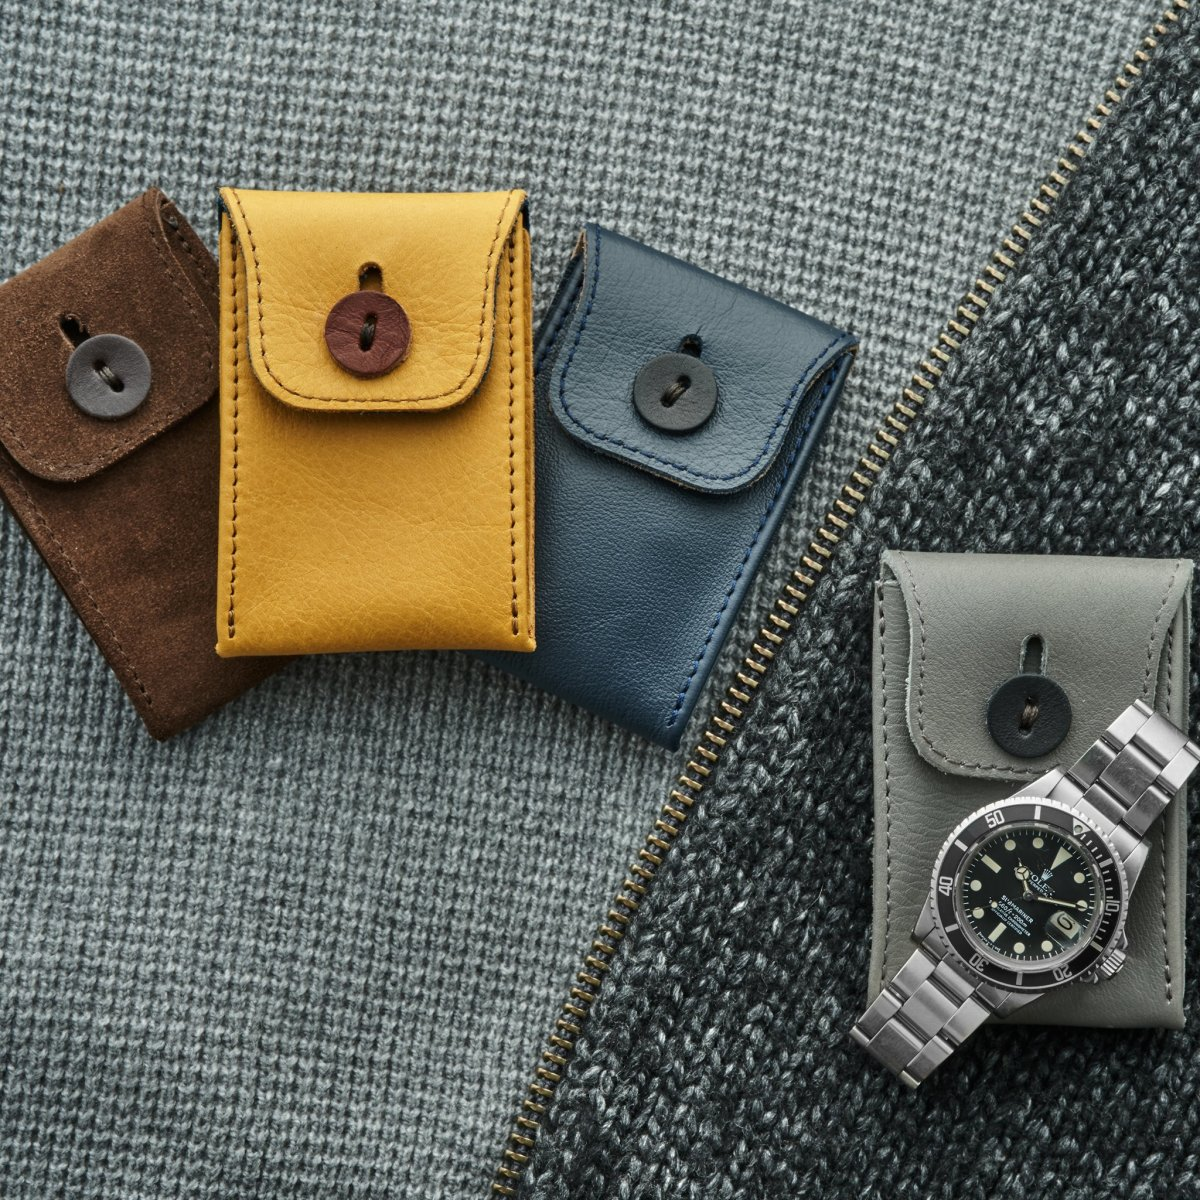 Hodinkee Mini Leather Watch Pouch